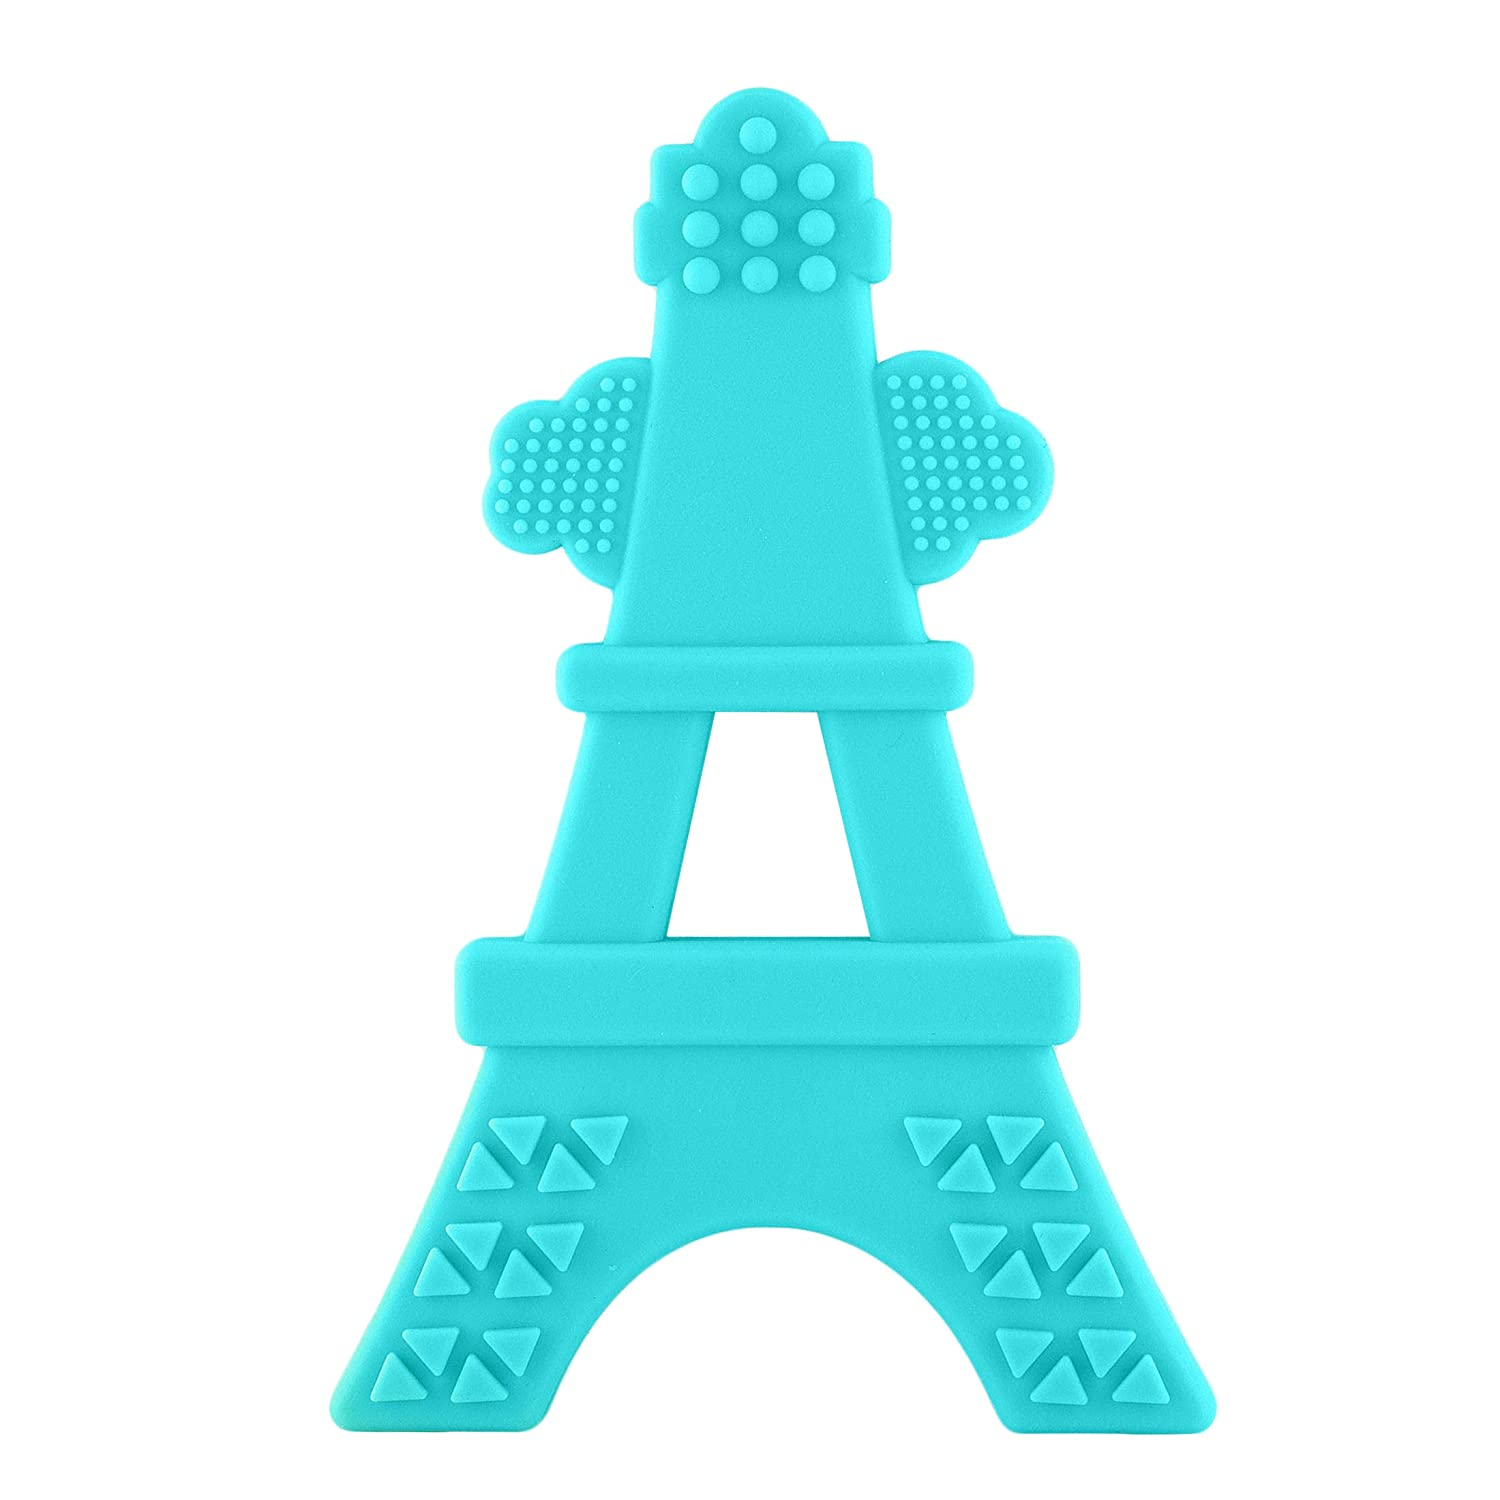 eZtotZ Silicone Tower Teether Toy - Made in USA - Multi-Textured Soft Food Grade Material Great for Teething Baby and Toddler Relief - Great Baby Shower Registry Gift - BPA Free/Freezer Safe (Teal)